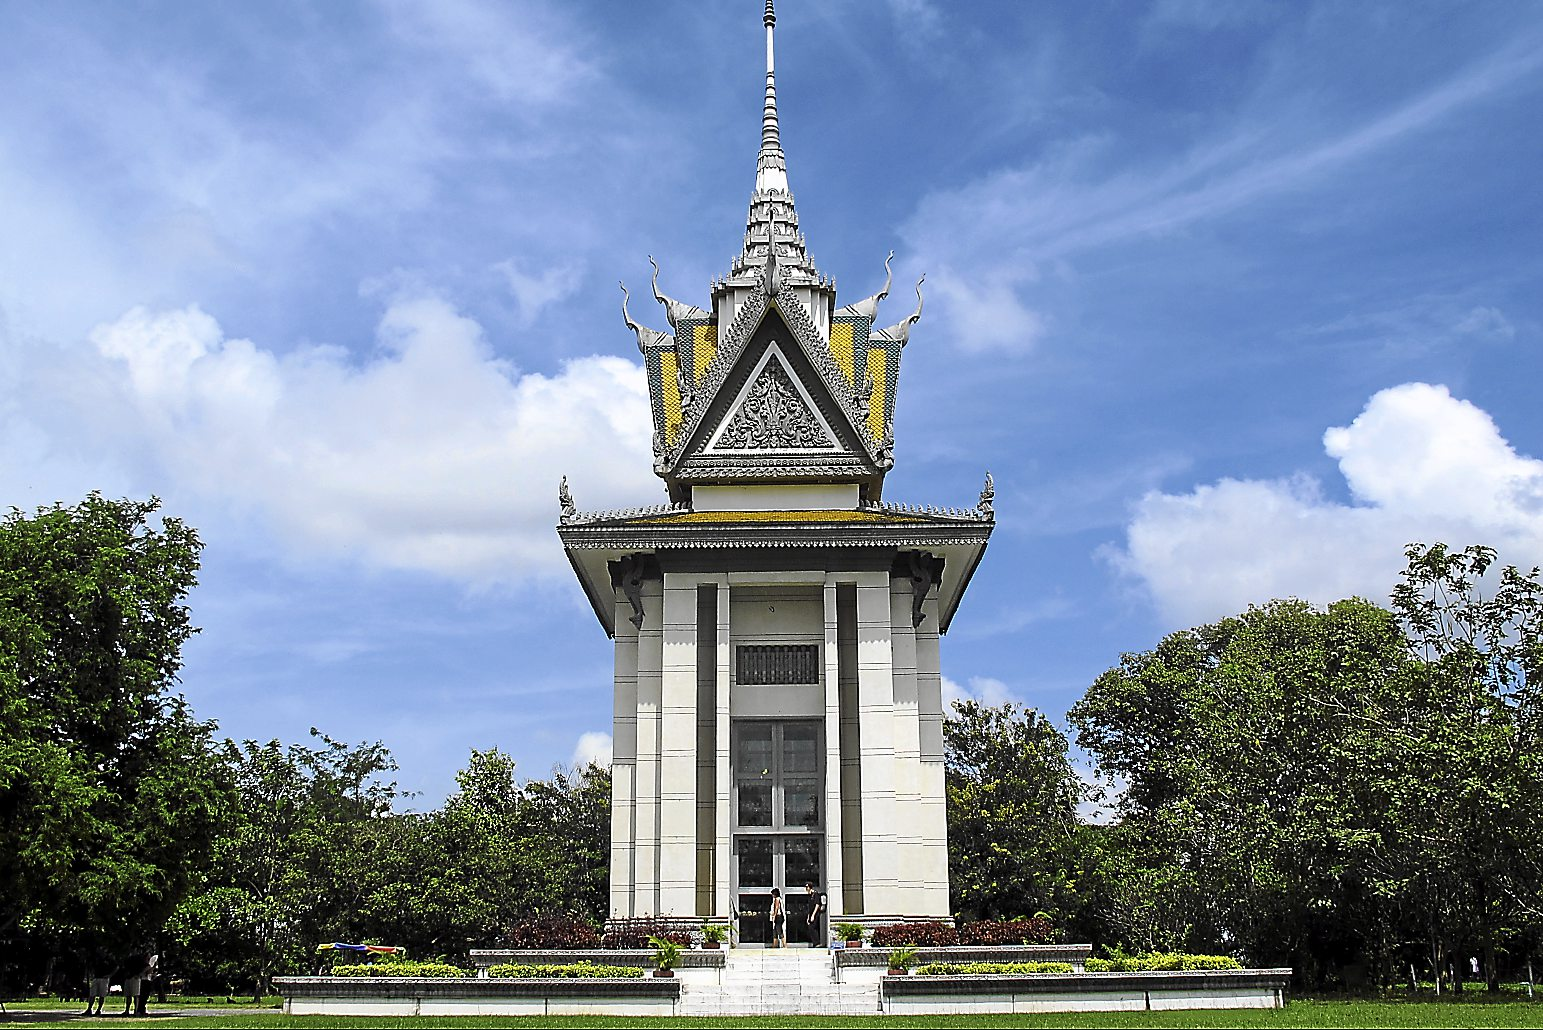 The Bhuddist Stupa at Choeung Ek, Cambodia, that houses thousands of skulls of the victims from the Khmer Rouge regime in the 1970's. - Photo from Wikimedia Commons